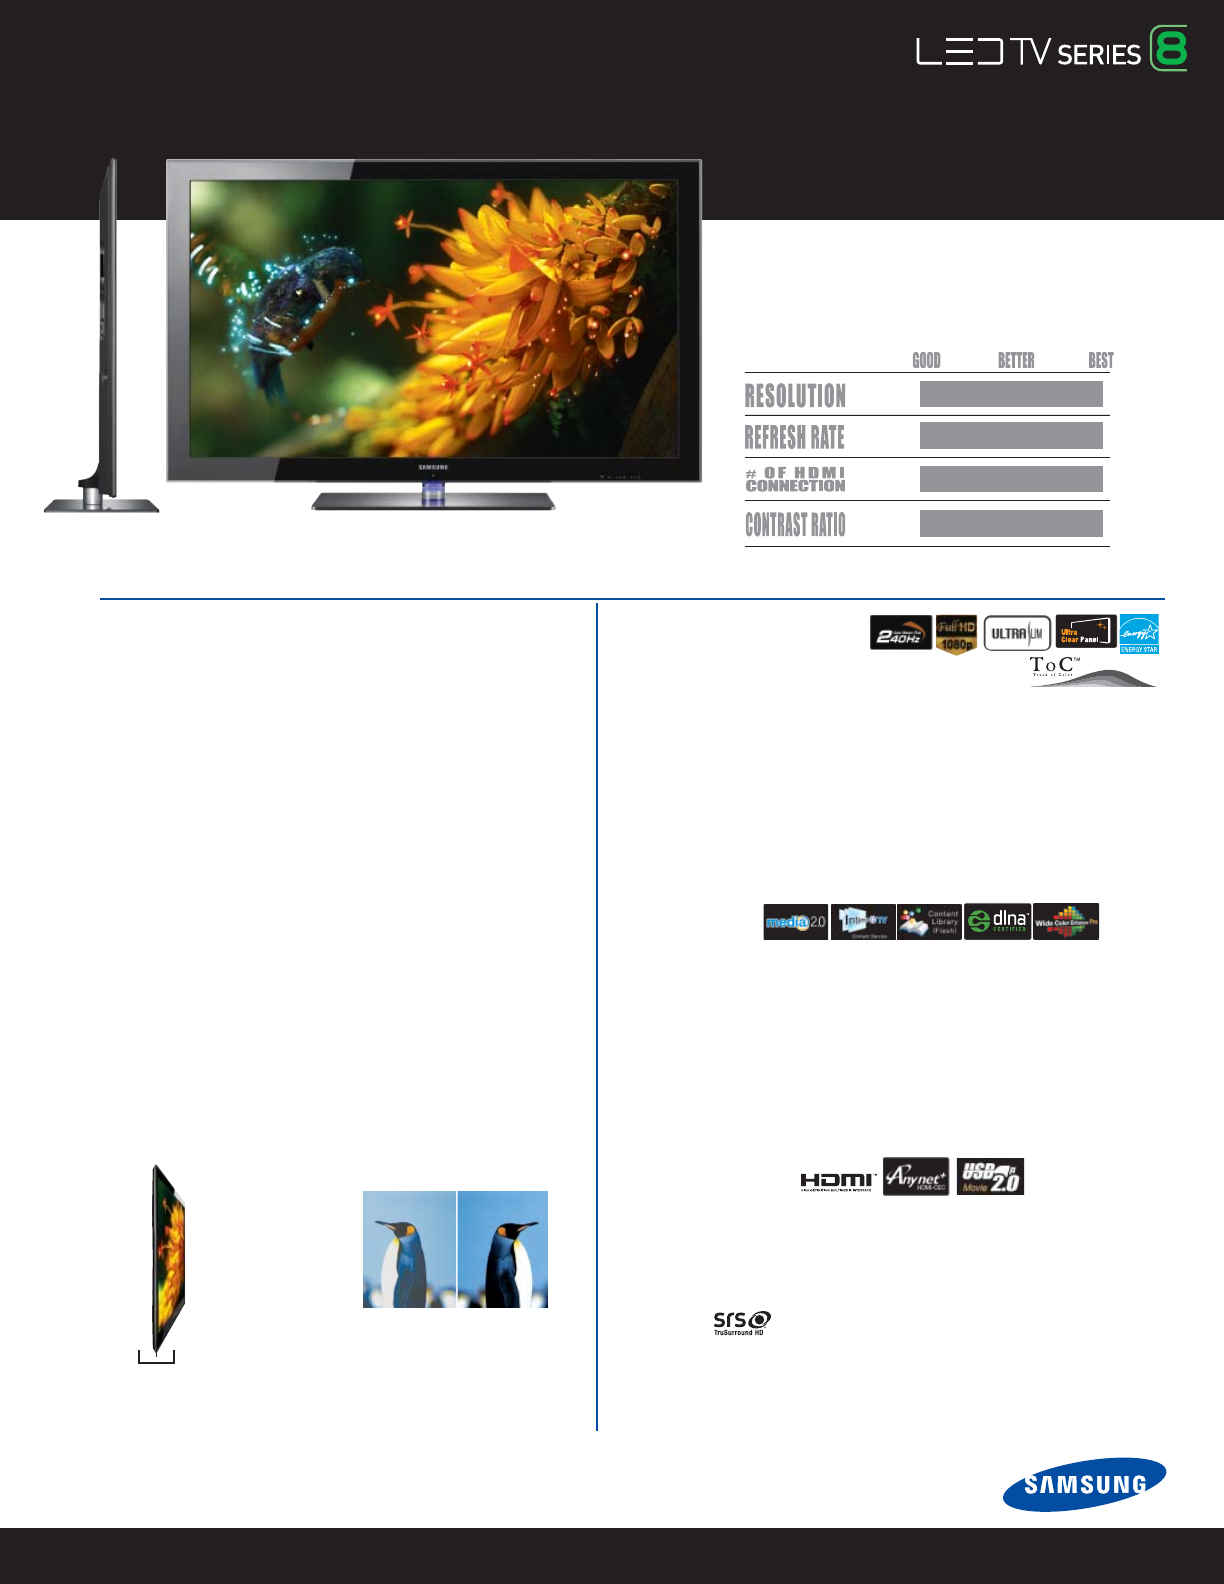 Samsung Flat Panel Television UN55B8500 User Guide